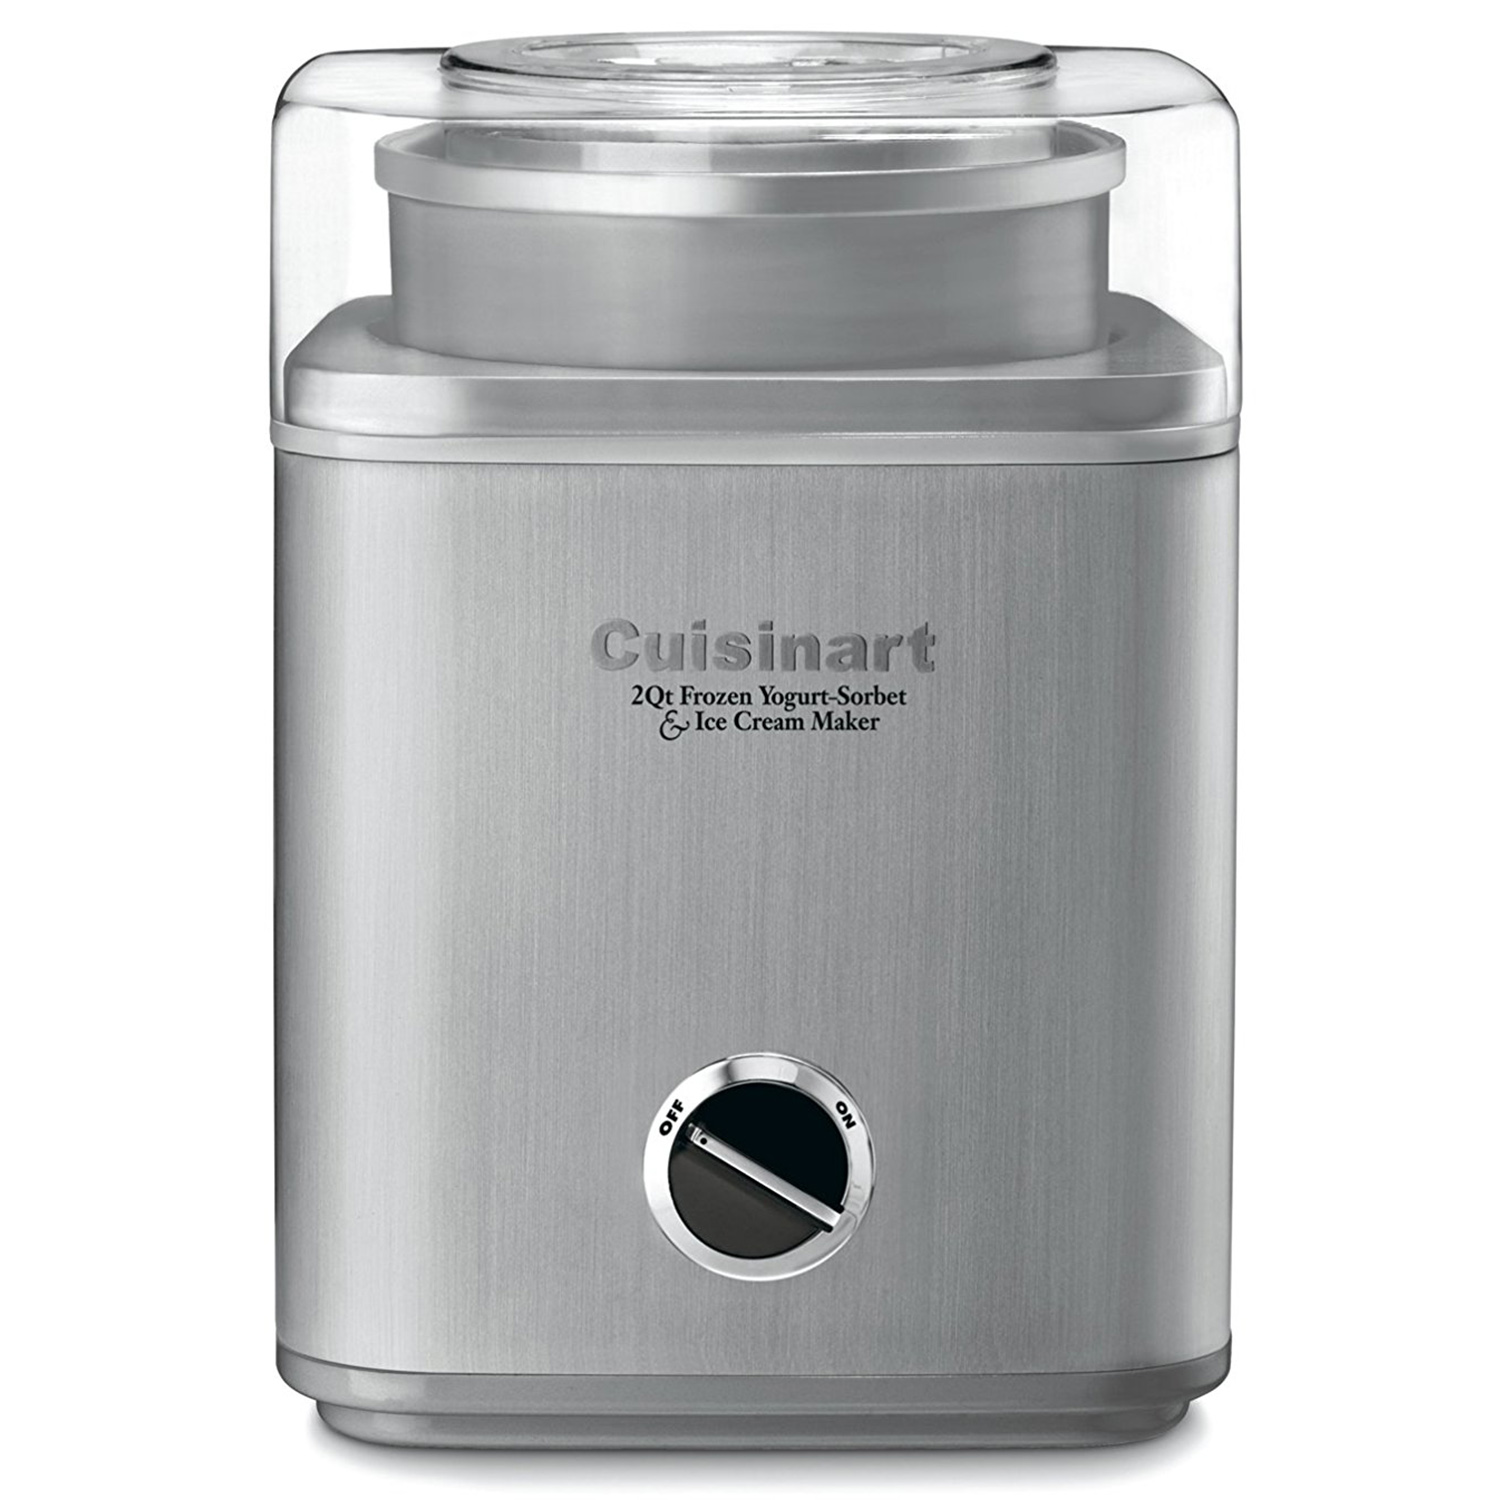 Cuisinart Frozen Yogurt, Sorbet, Home Ice Cream Machine